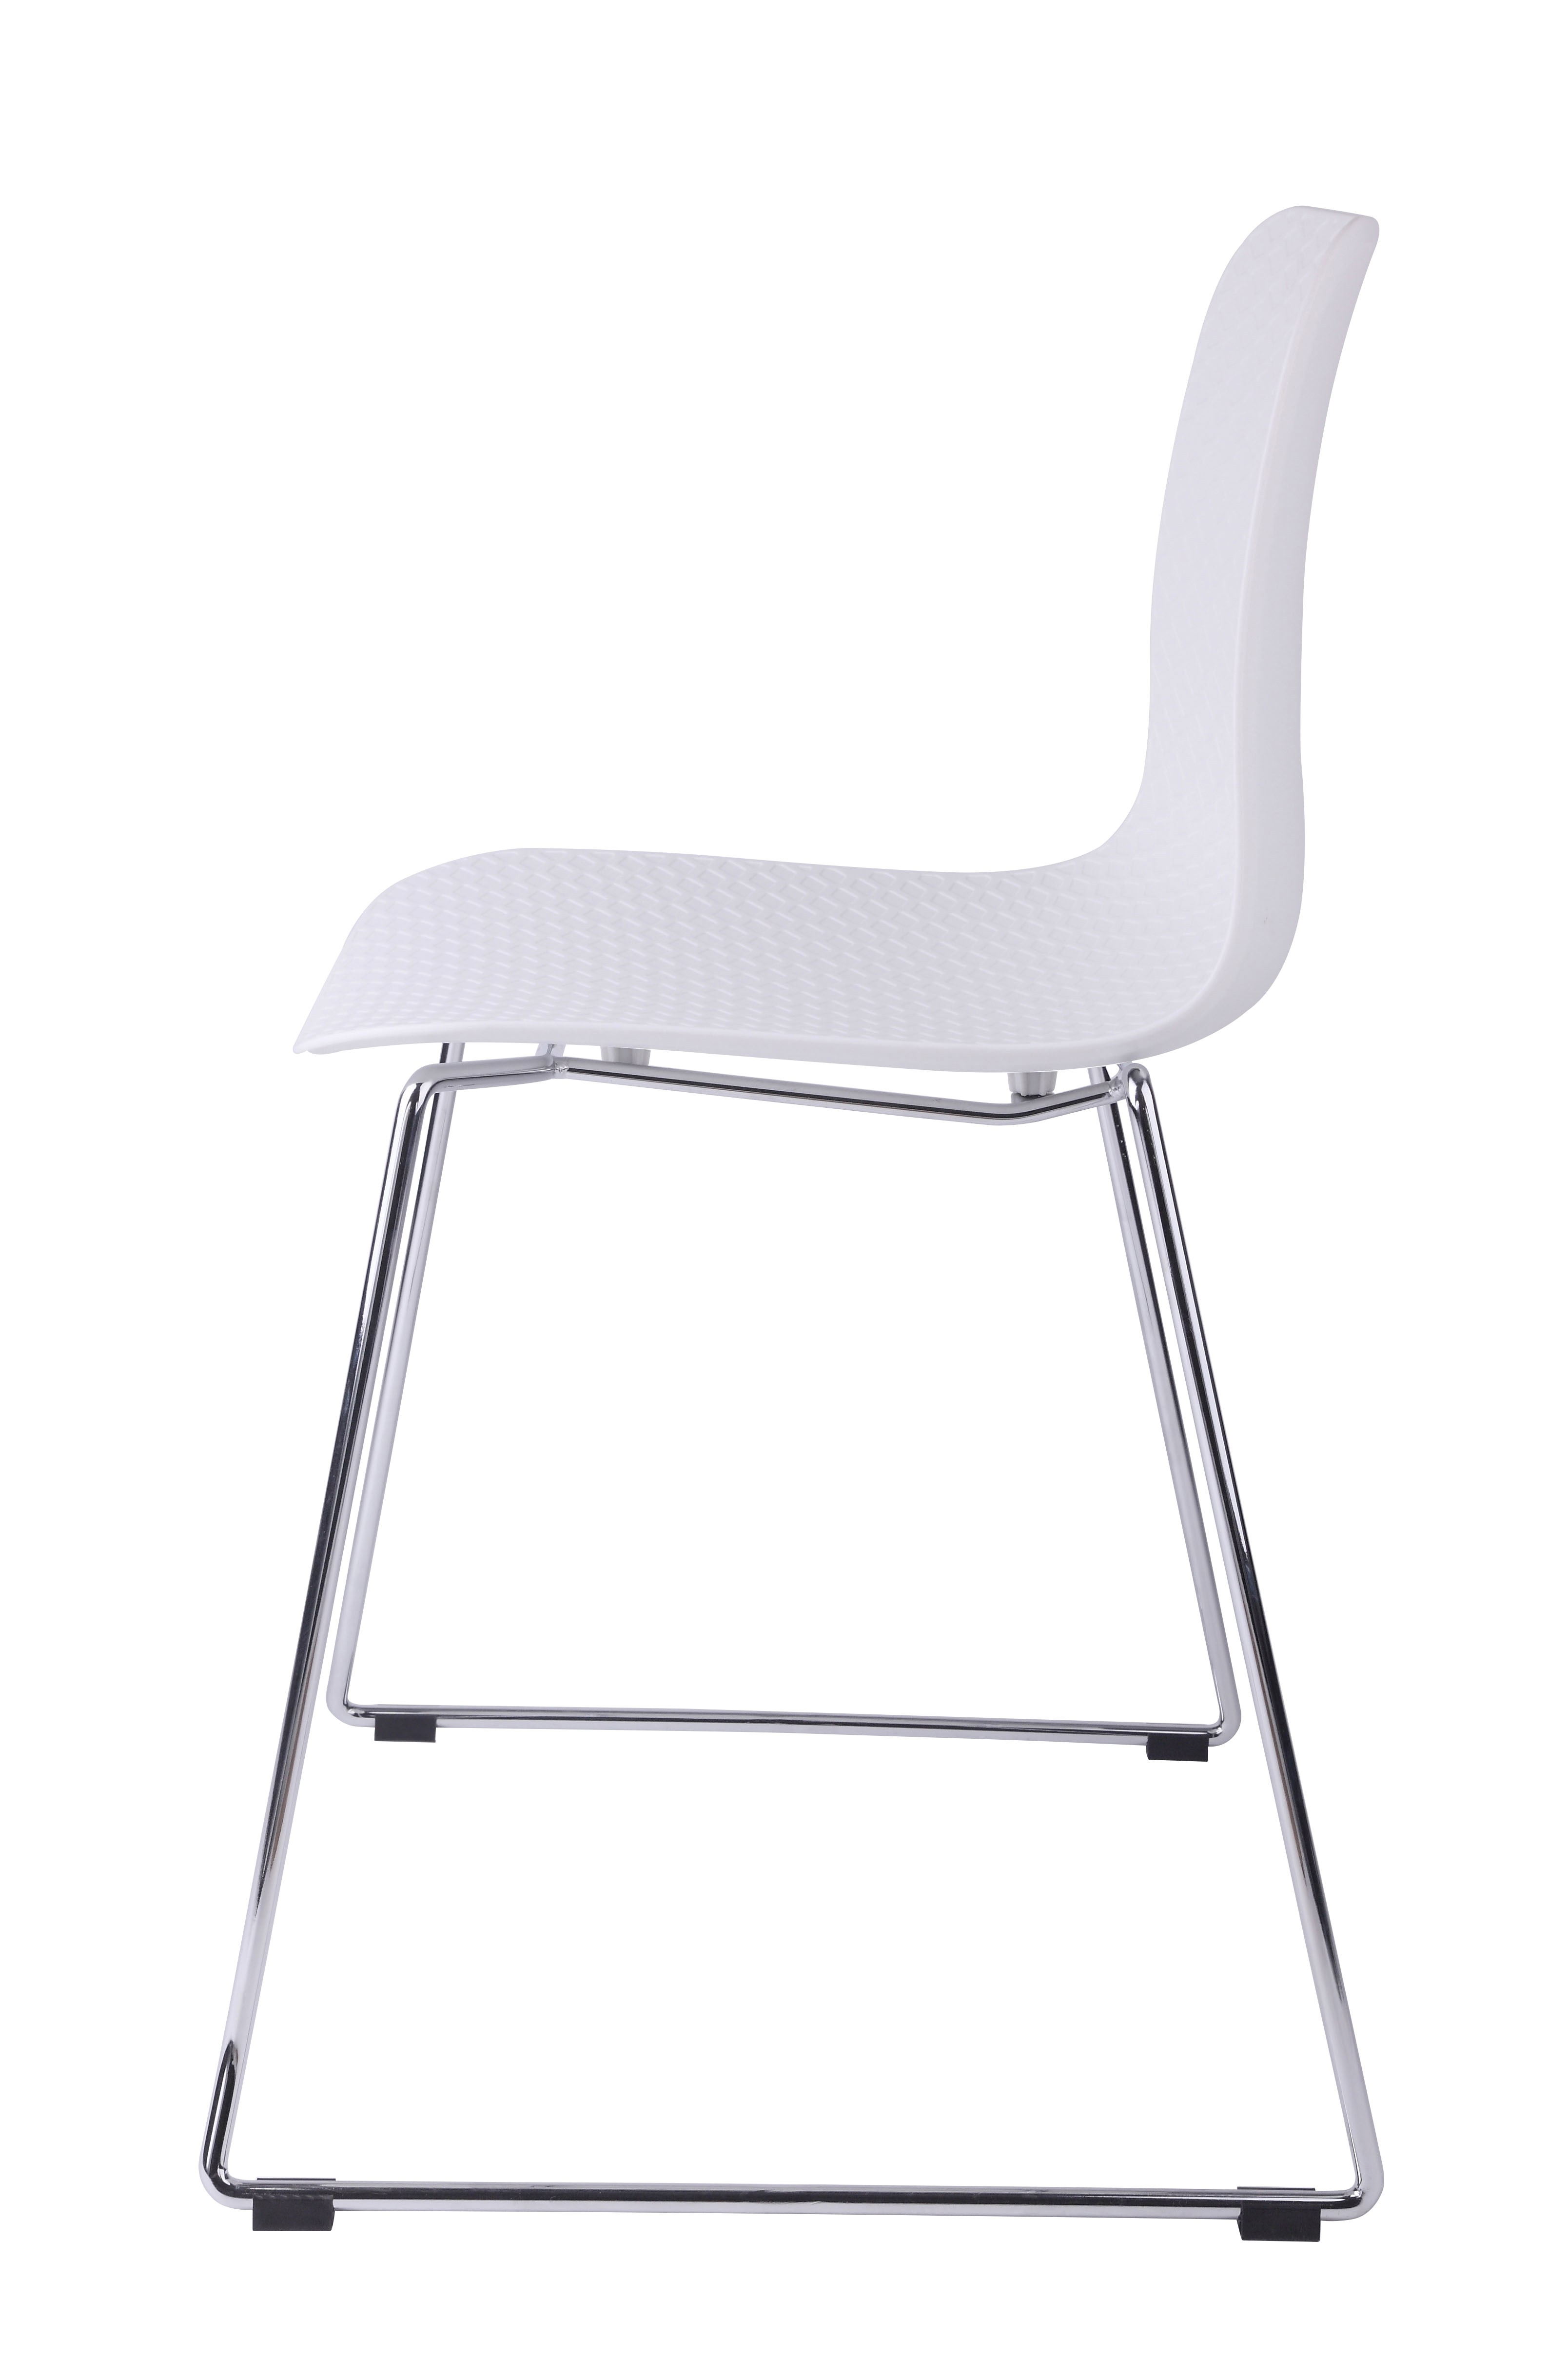 Molded plastic and metal chairs - With Your Purchase Receive At No Cost